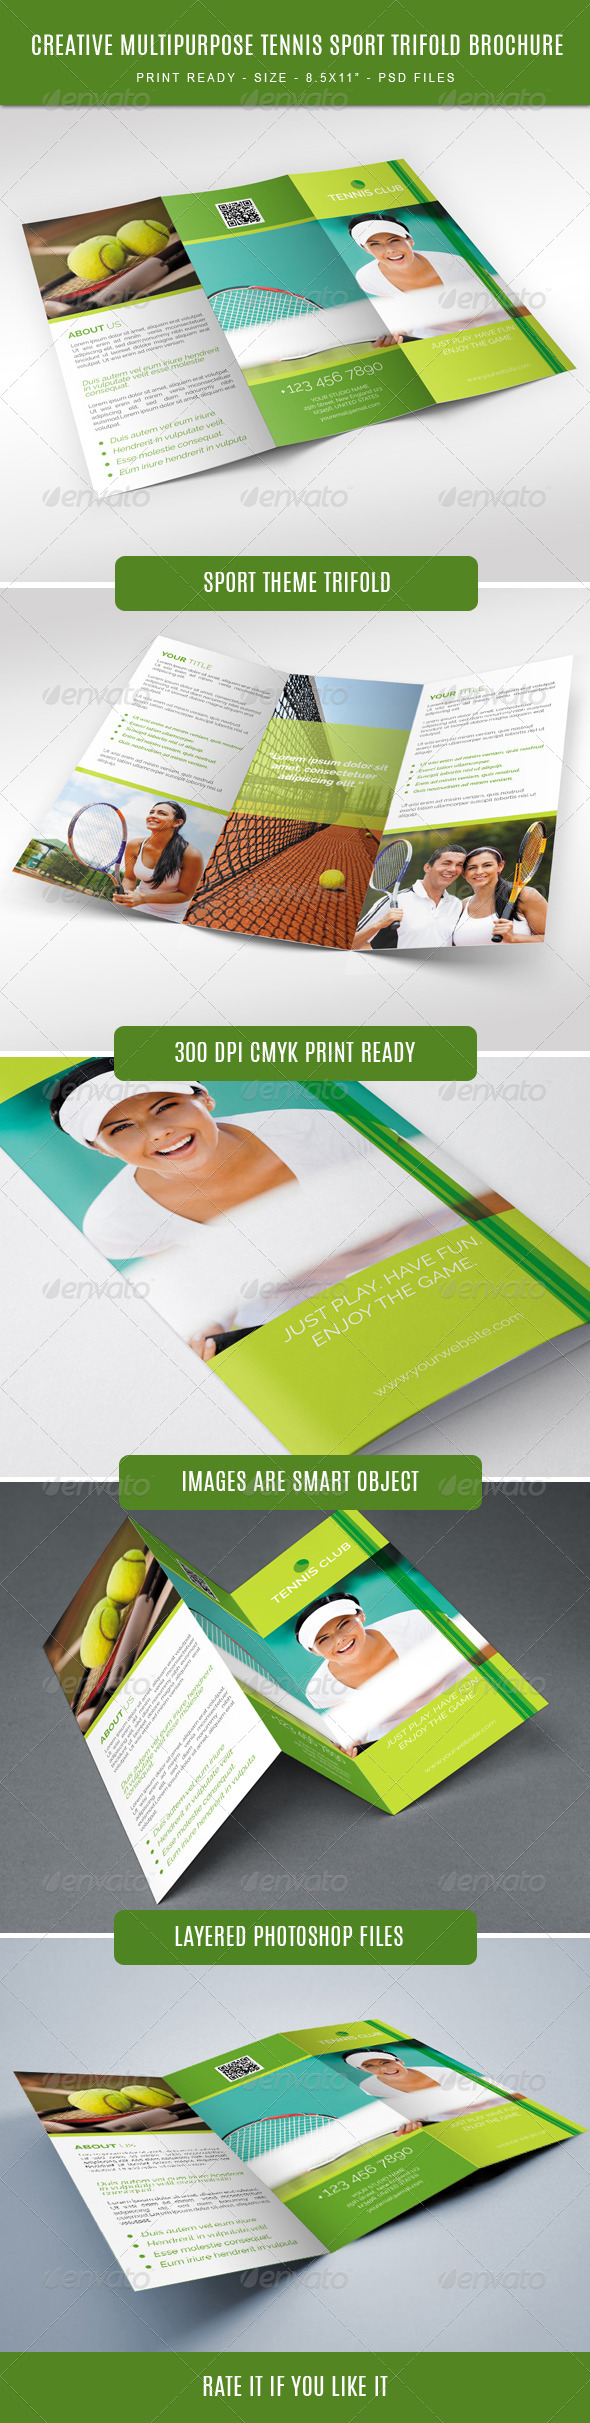 GraphicRiver Tennis Club Trifold Brochure 7886798